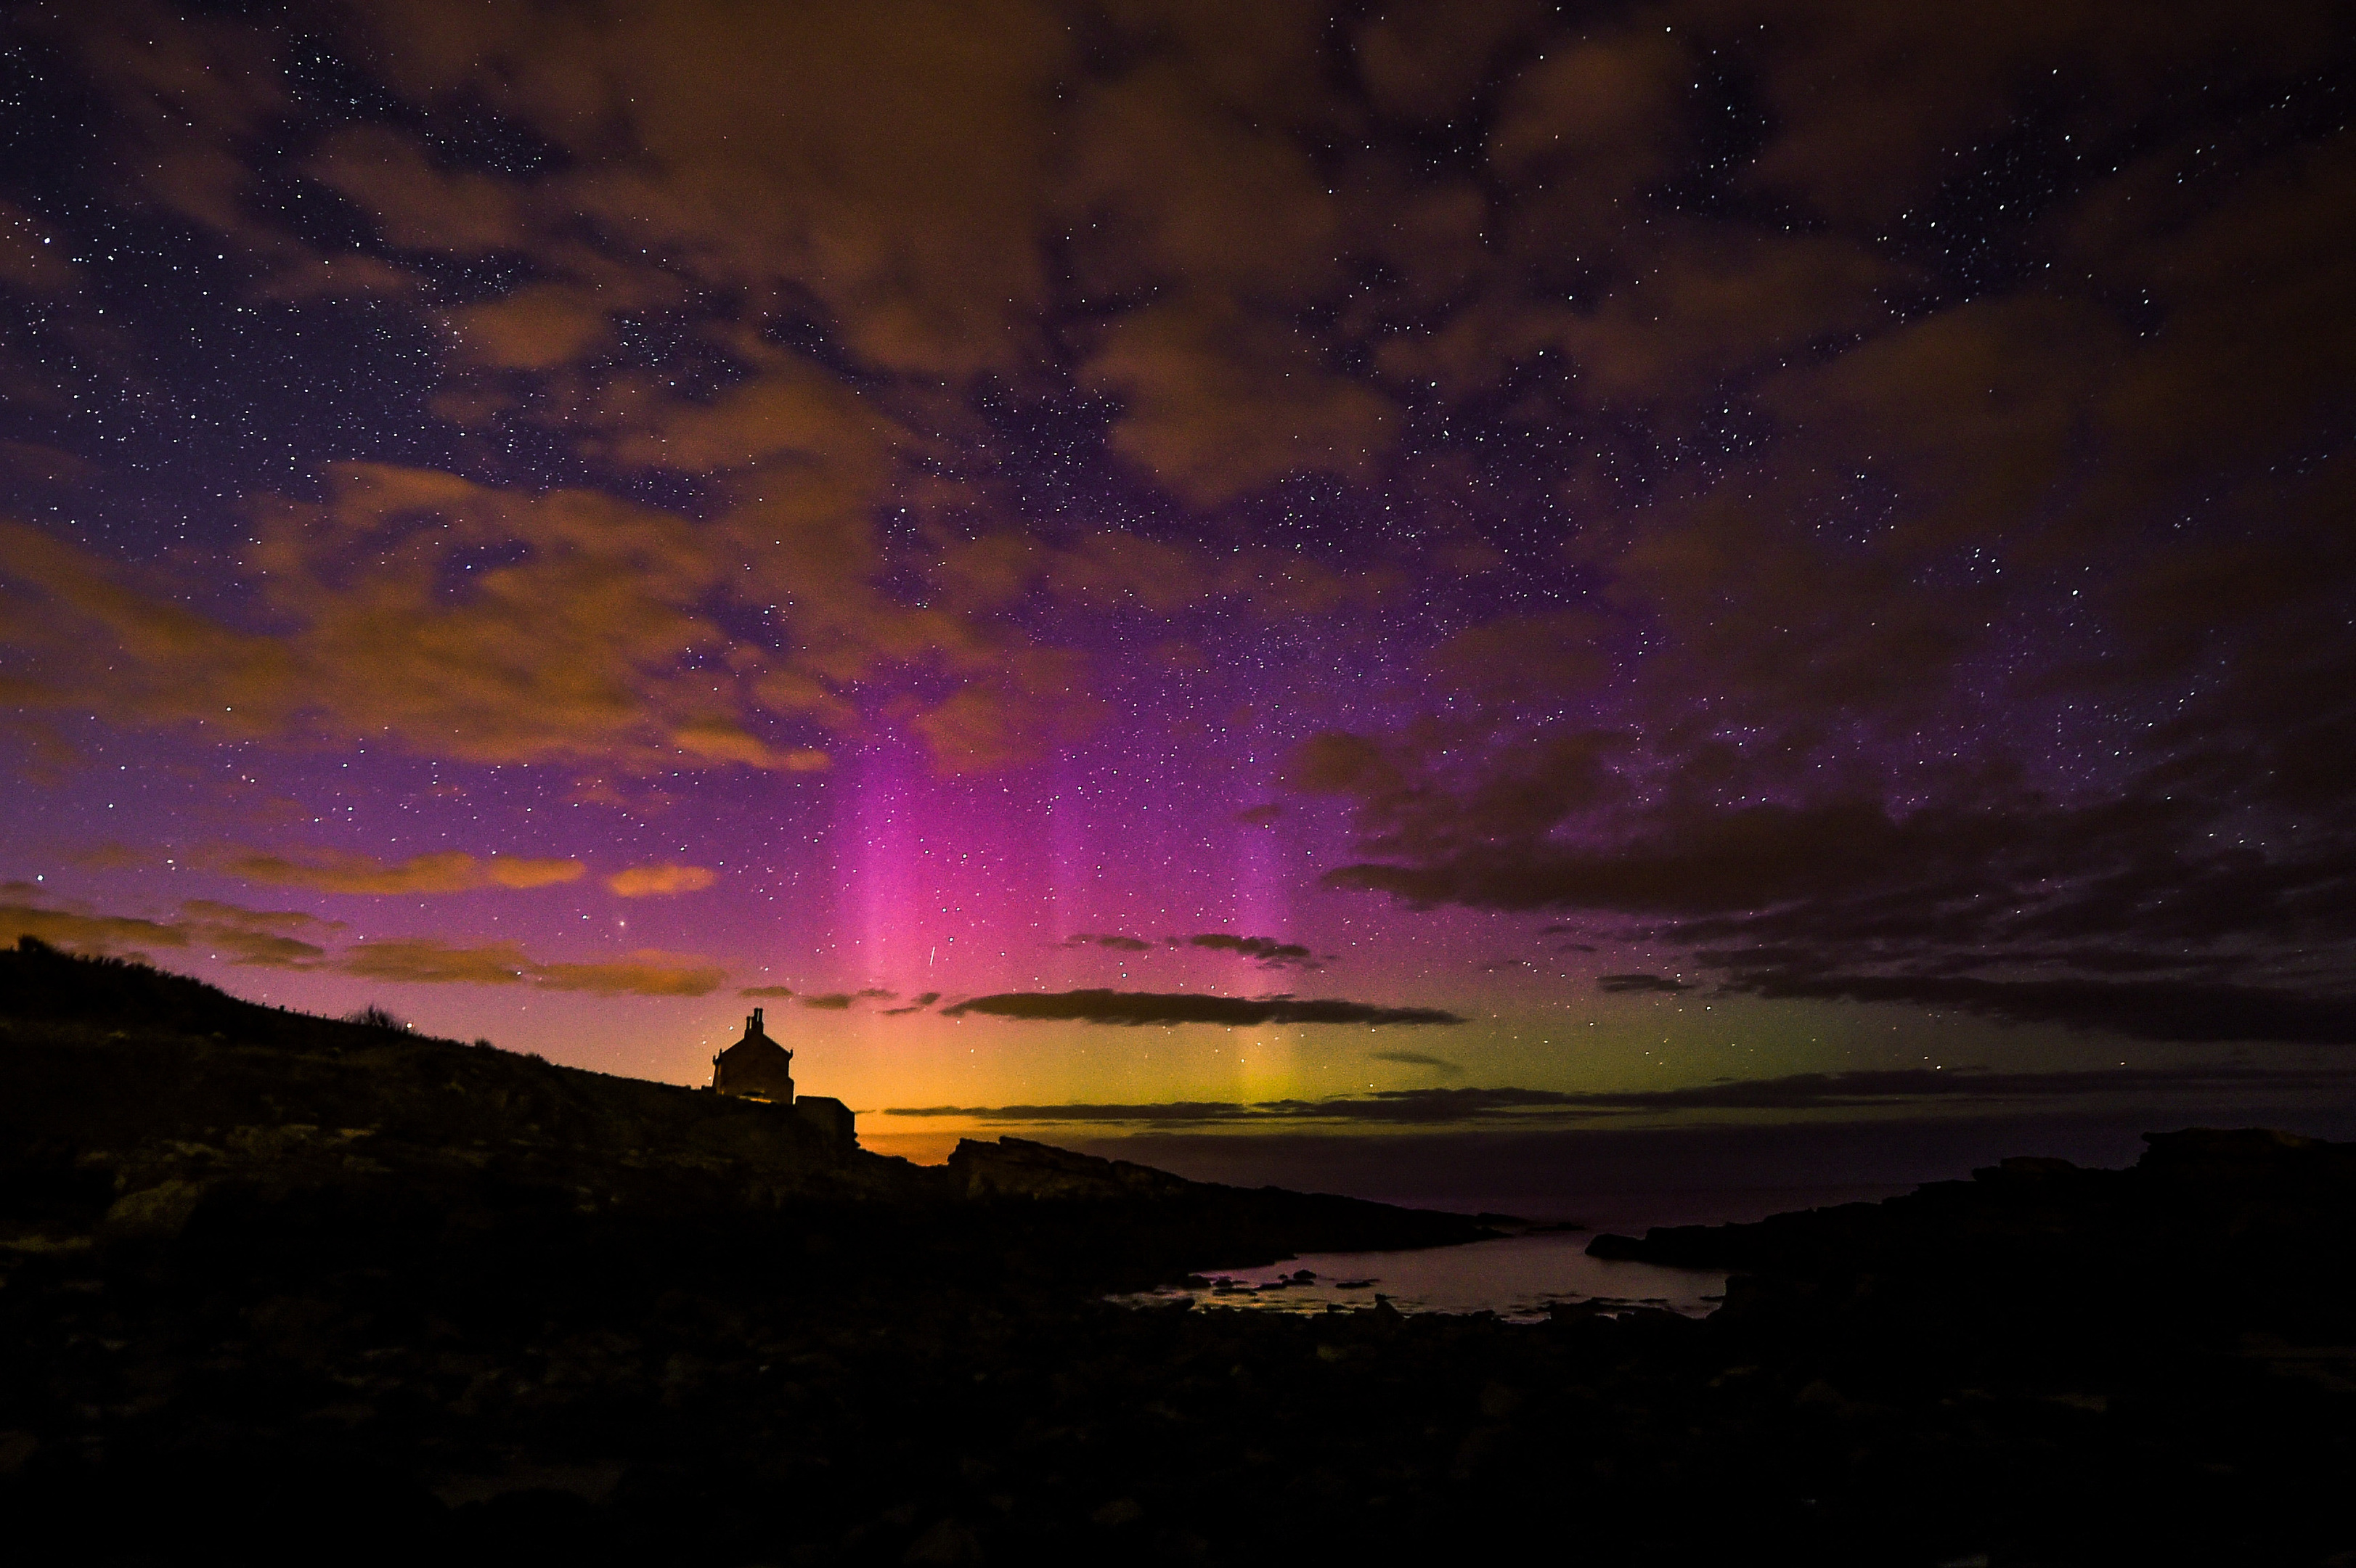 The aurora borealis, or the northern lights as they are commonly known, takes place over the Bathing House in Howick.